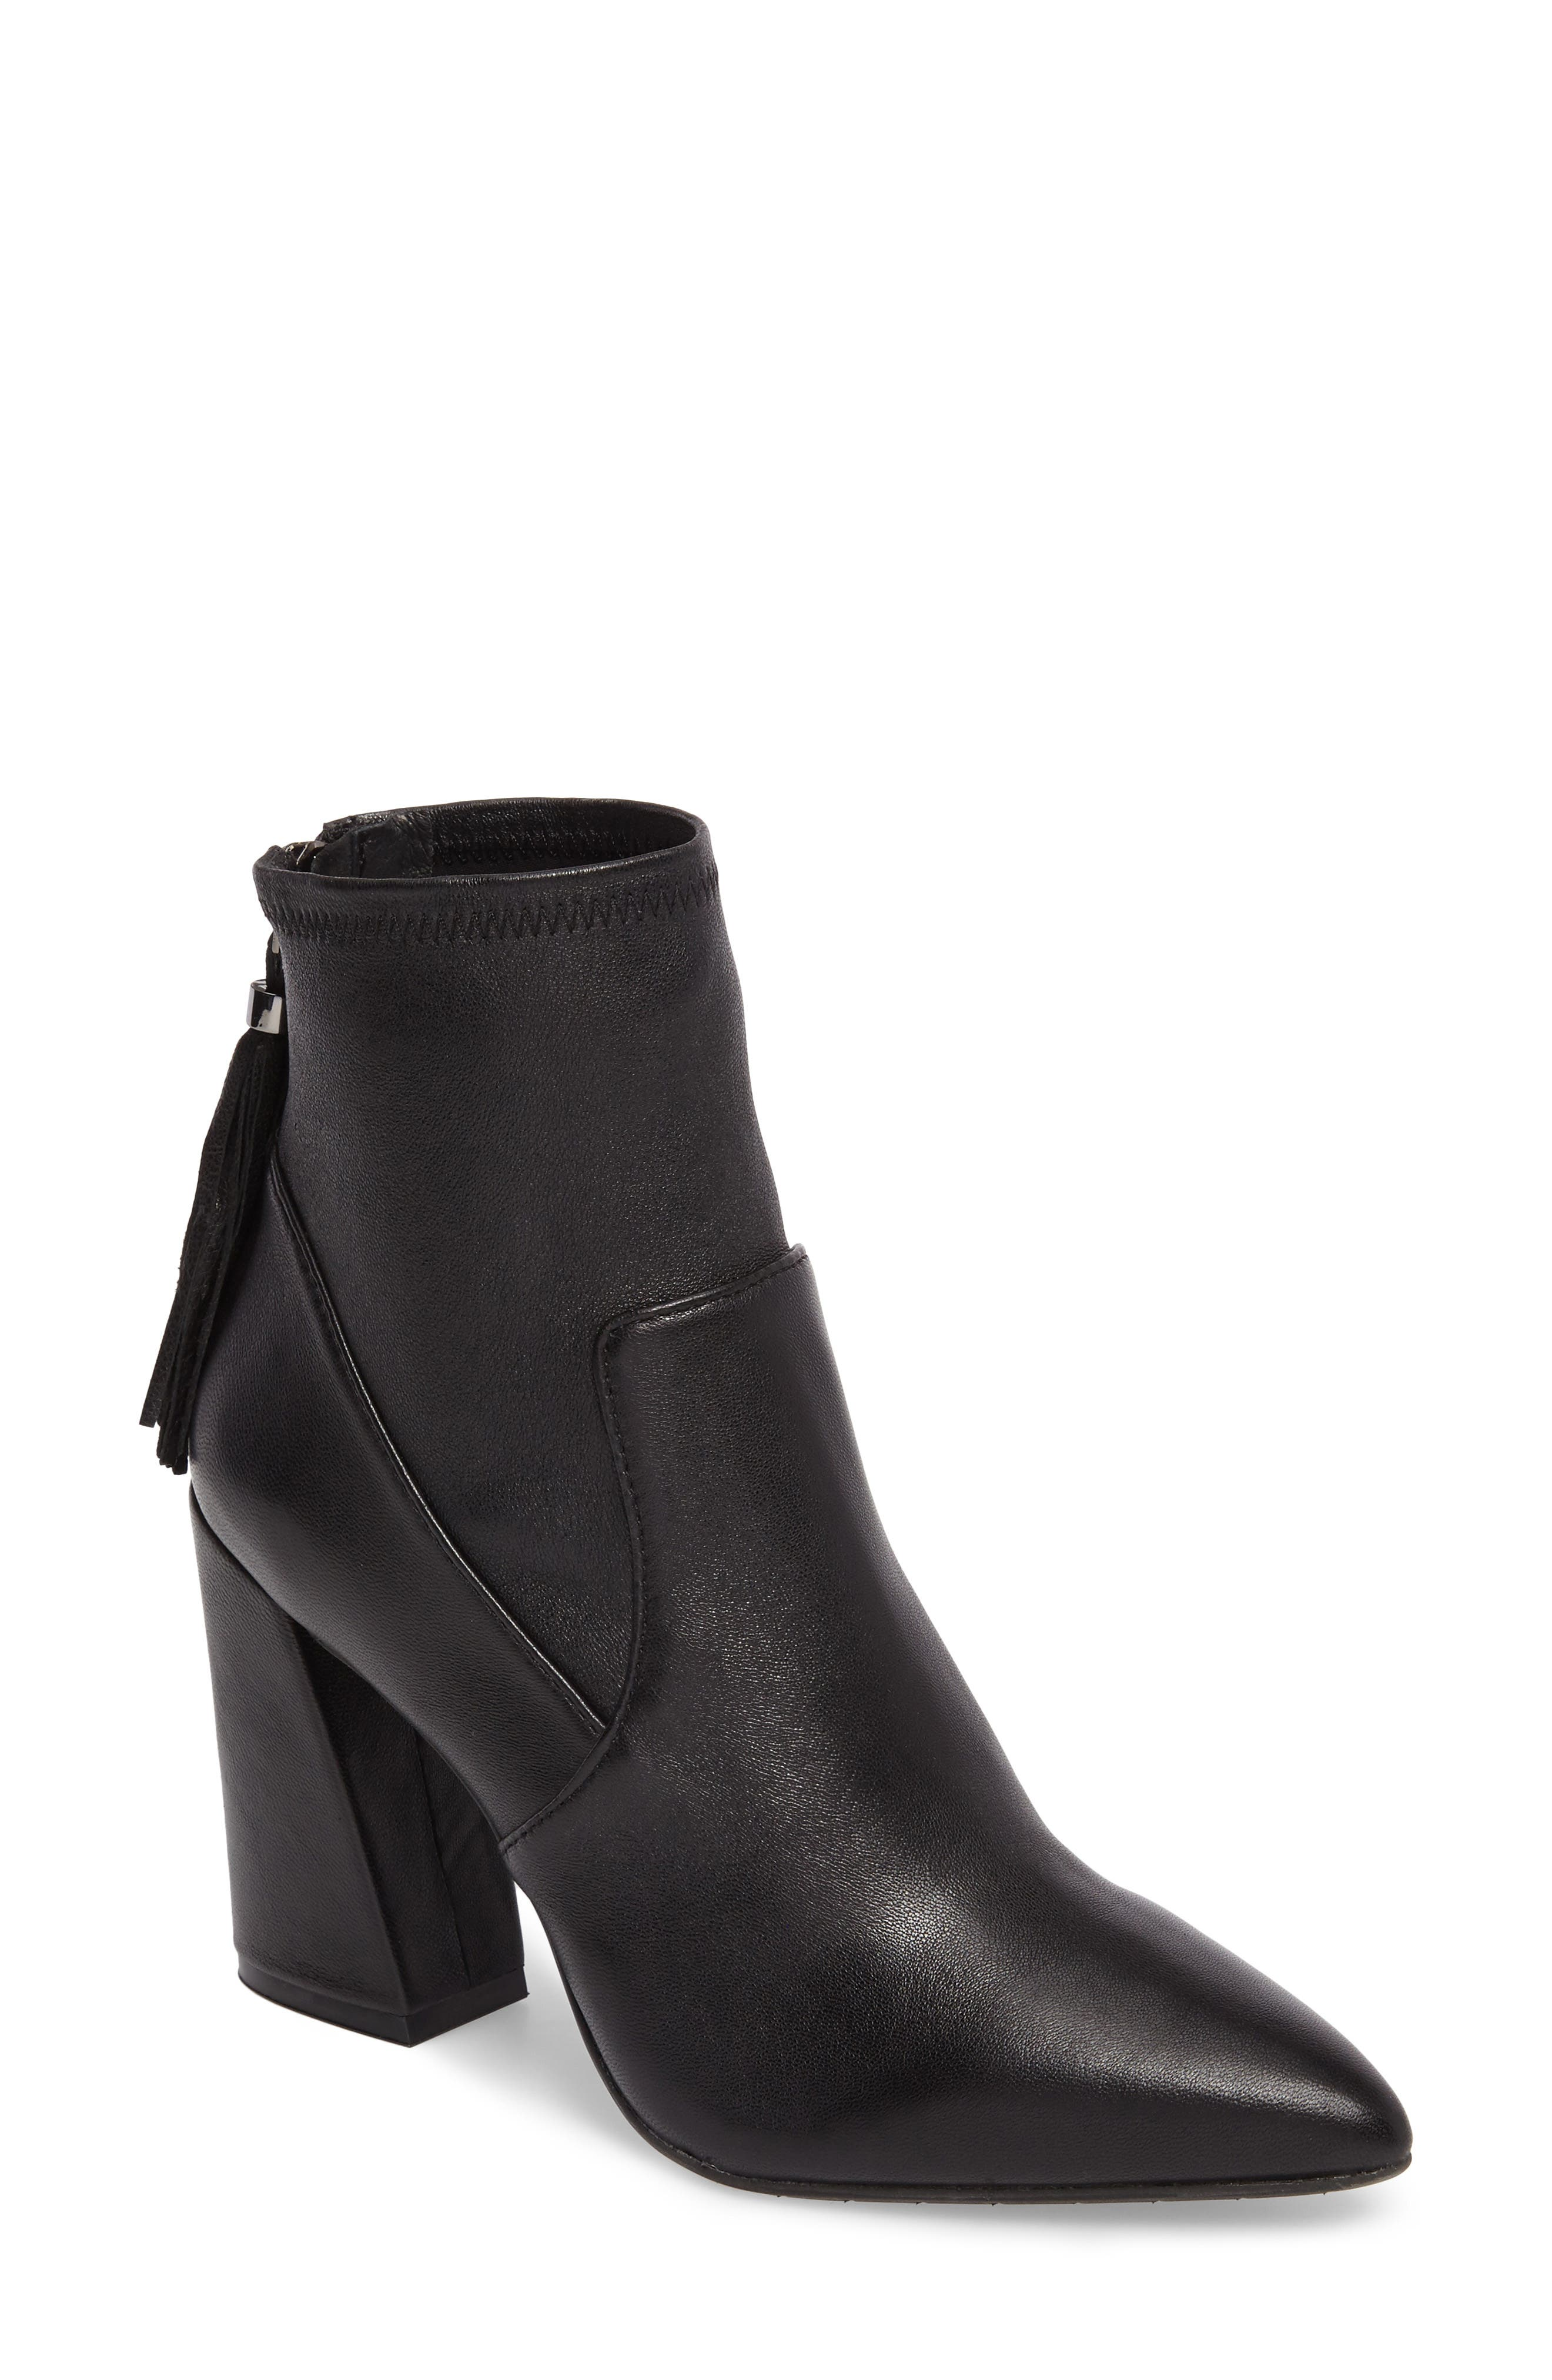 Gracelyn Pointy Toe Bootie,                             Main thumbnail 1, color,                             001